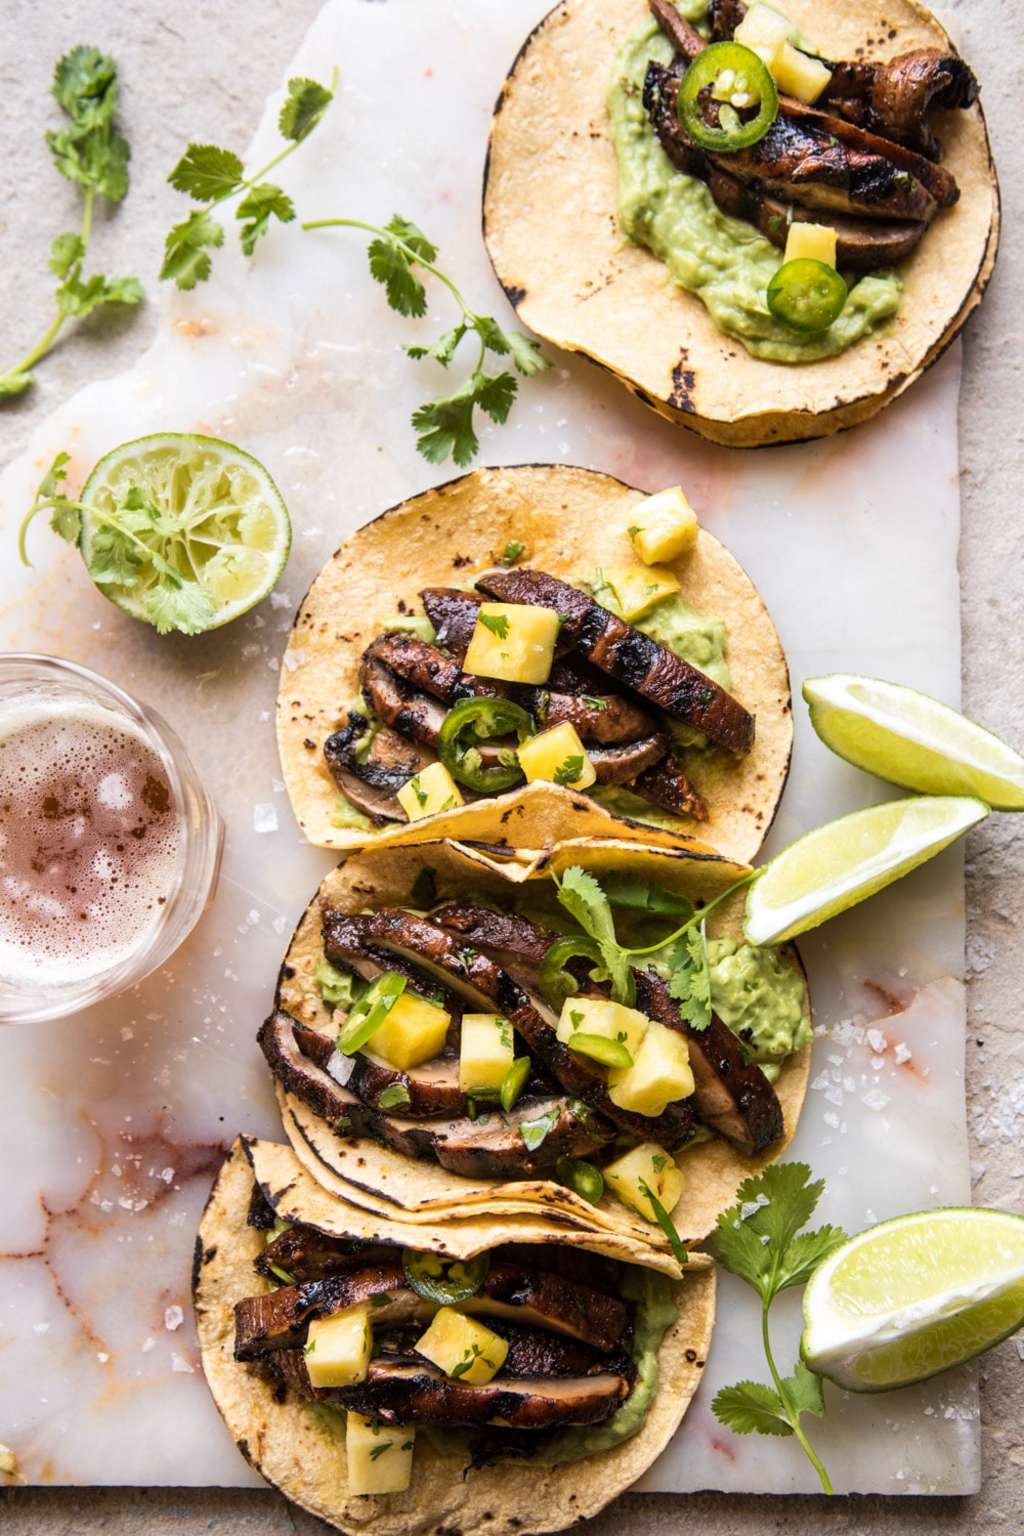 These Meaty Mushroom Tacos Are What Dreams Are Made Of